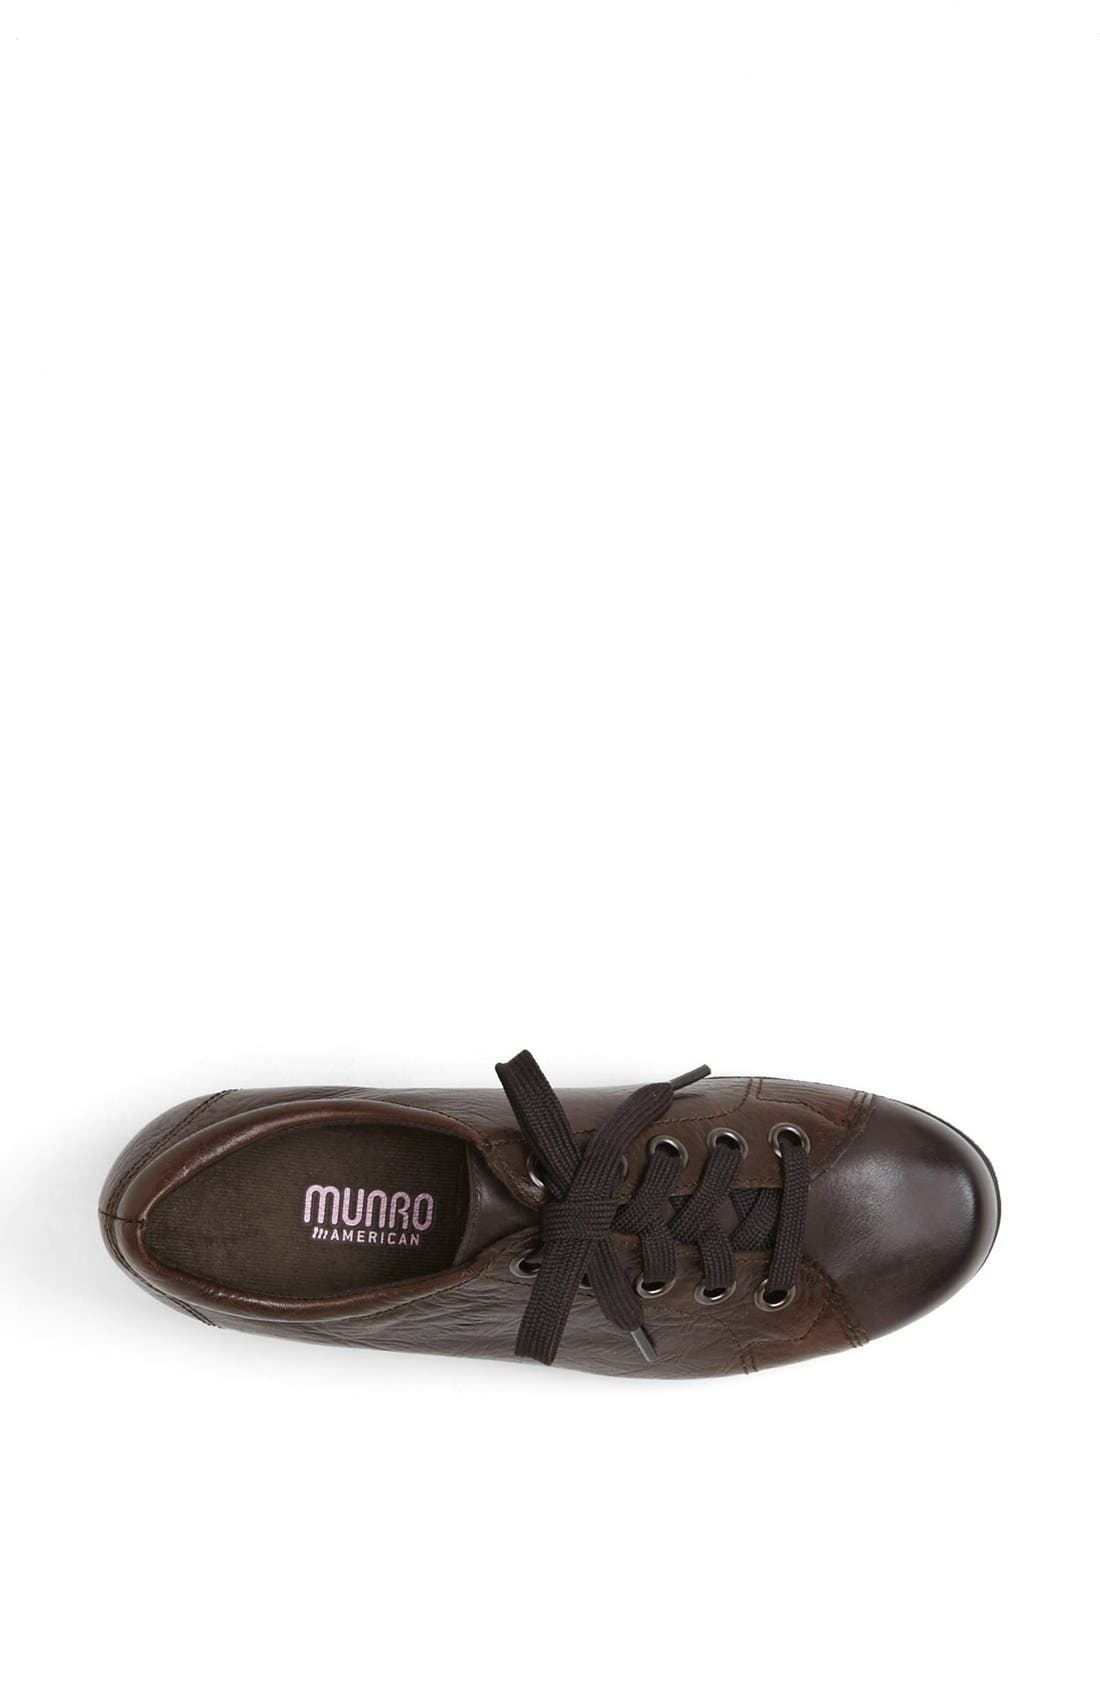 Alternate Image 3  - Munro 'Dakota' Sneaker